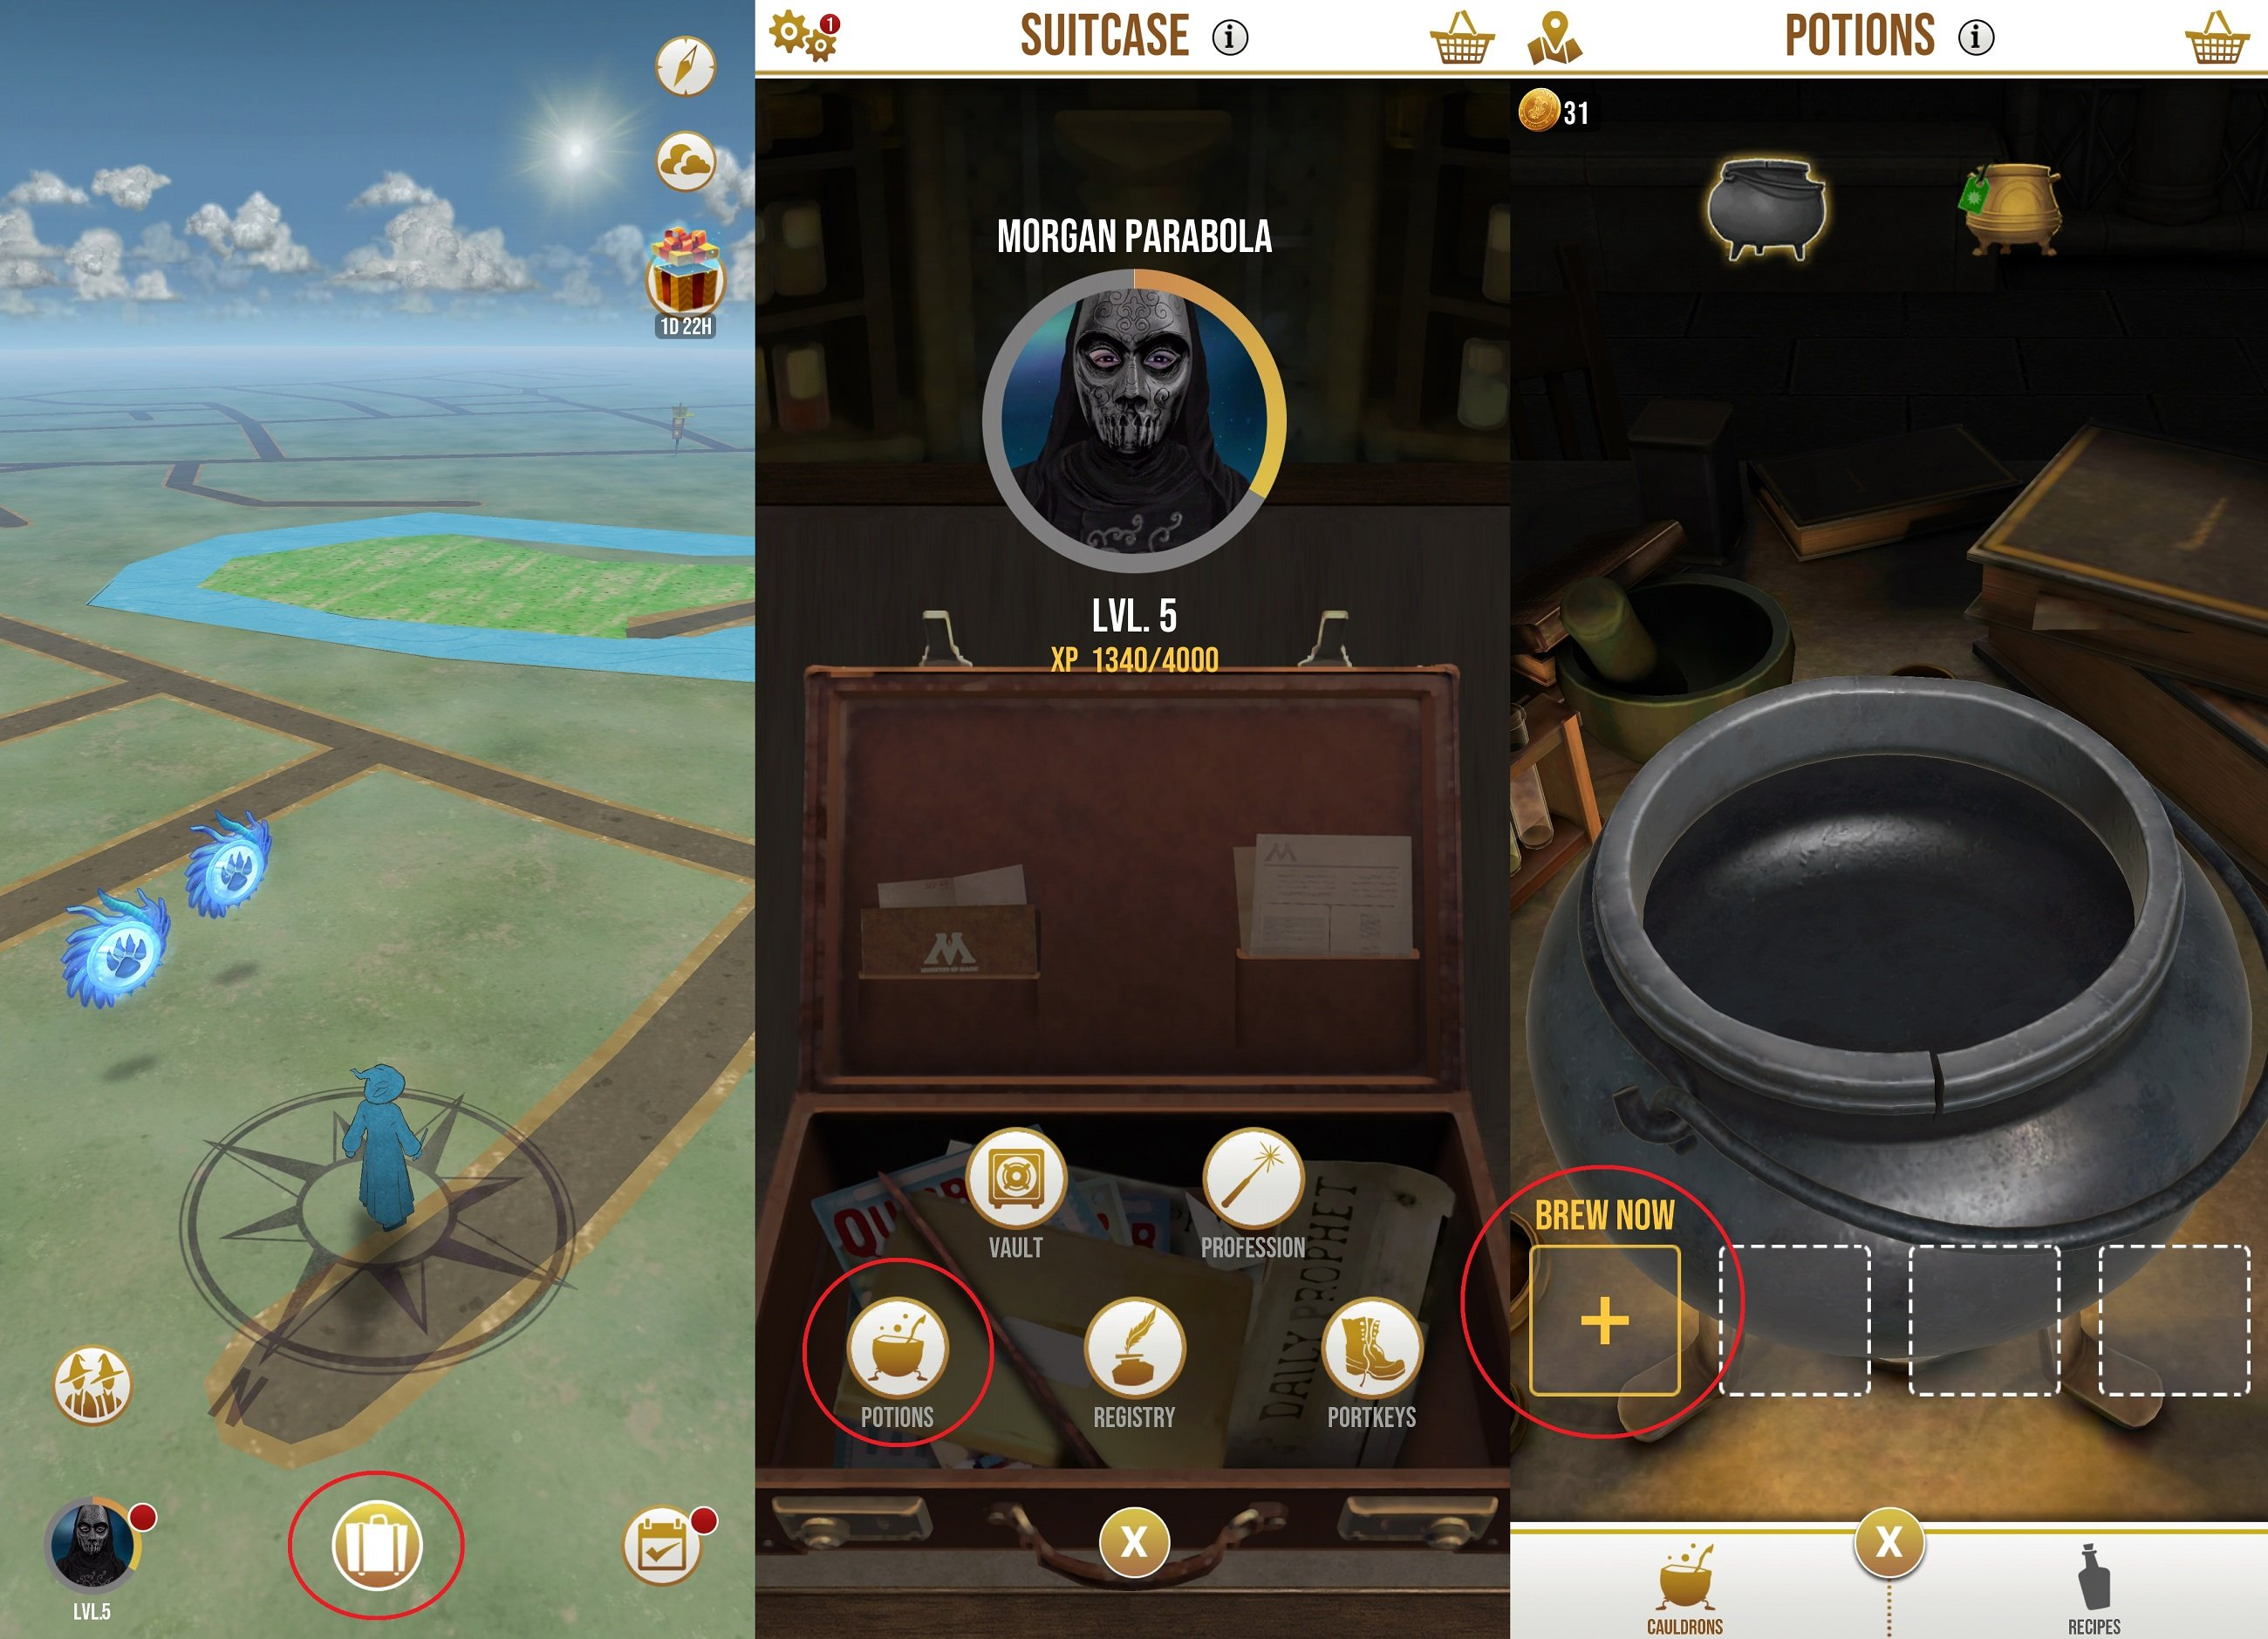 To brew Potions in Harry Potter Wizards Unite, you'll need to tap on your Suitcase, select Potions, then tap Brew Now to open your list of available Potions.